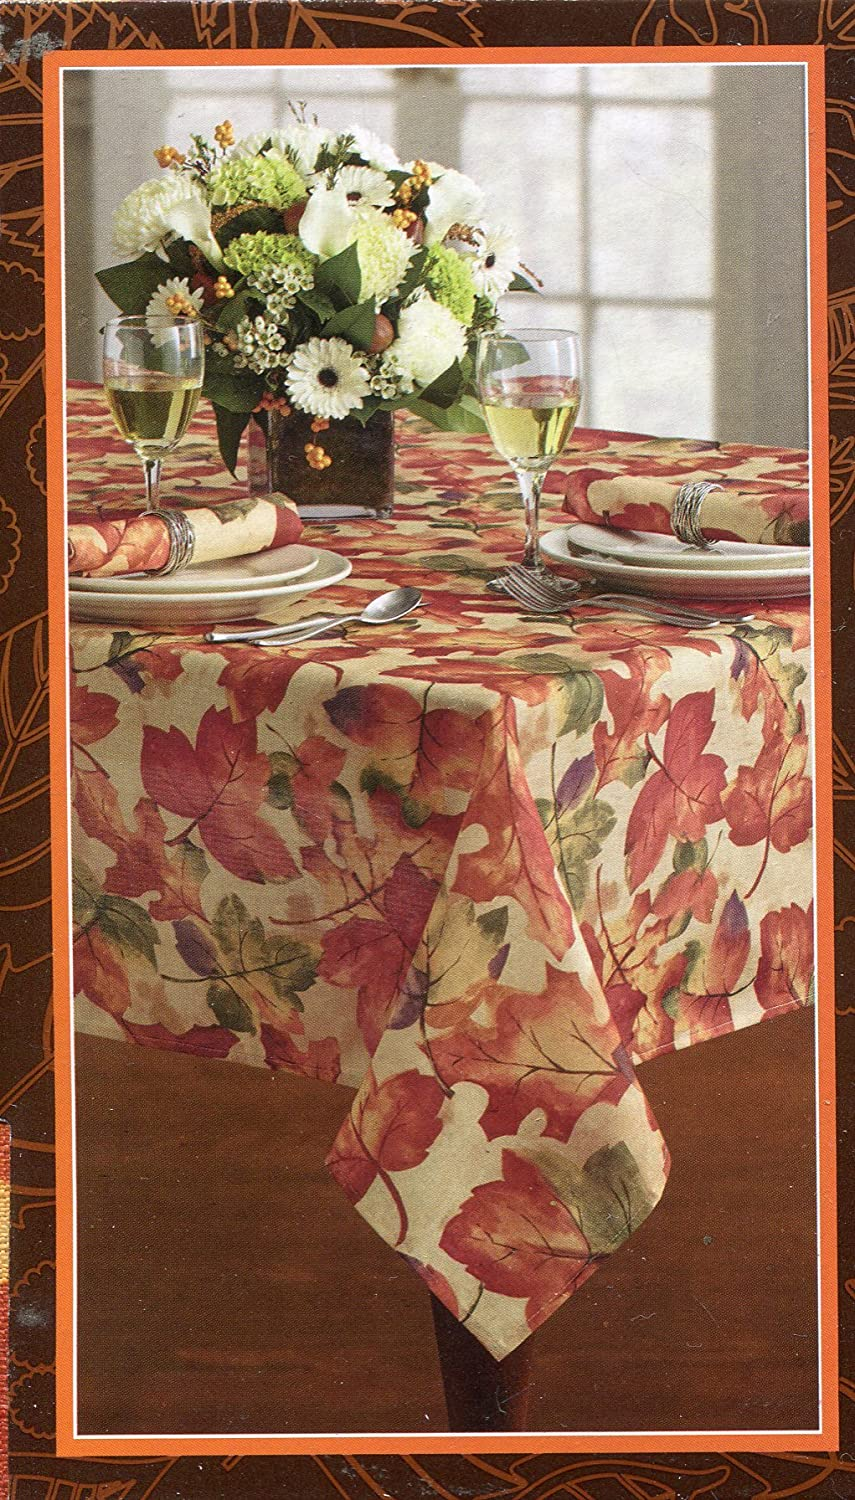 Liberty Harvest Festival Autumn Leaves Tablecloth 52-by-70 Inches Oblong Rectangular